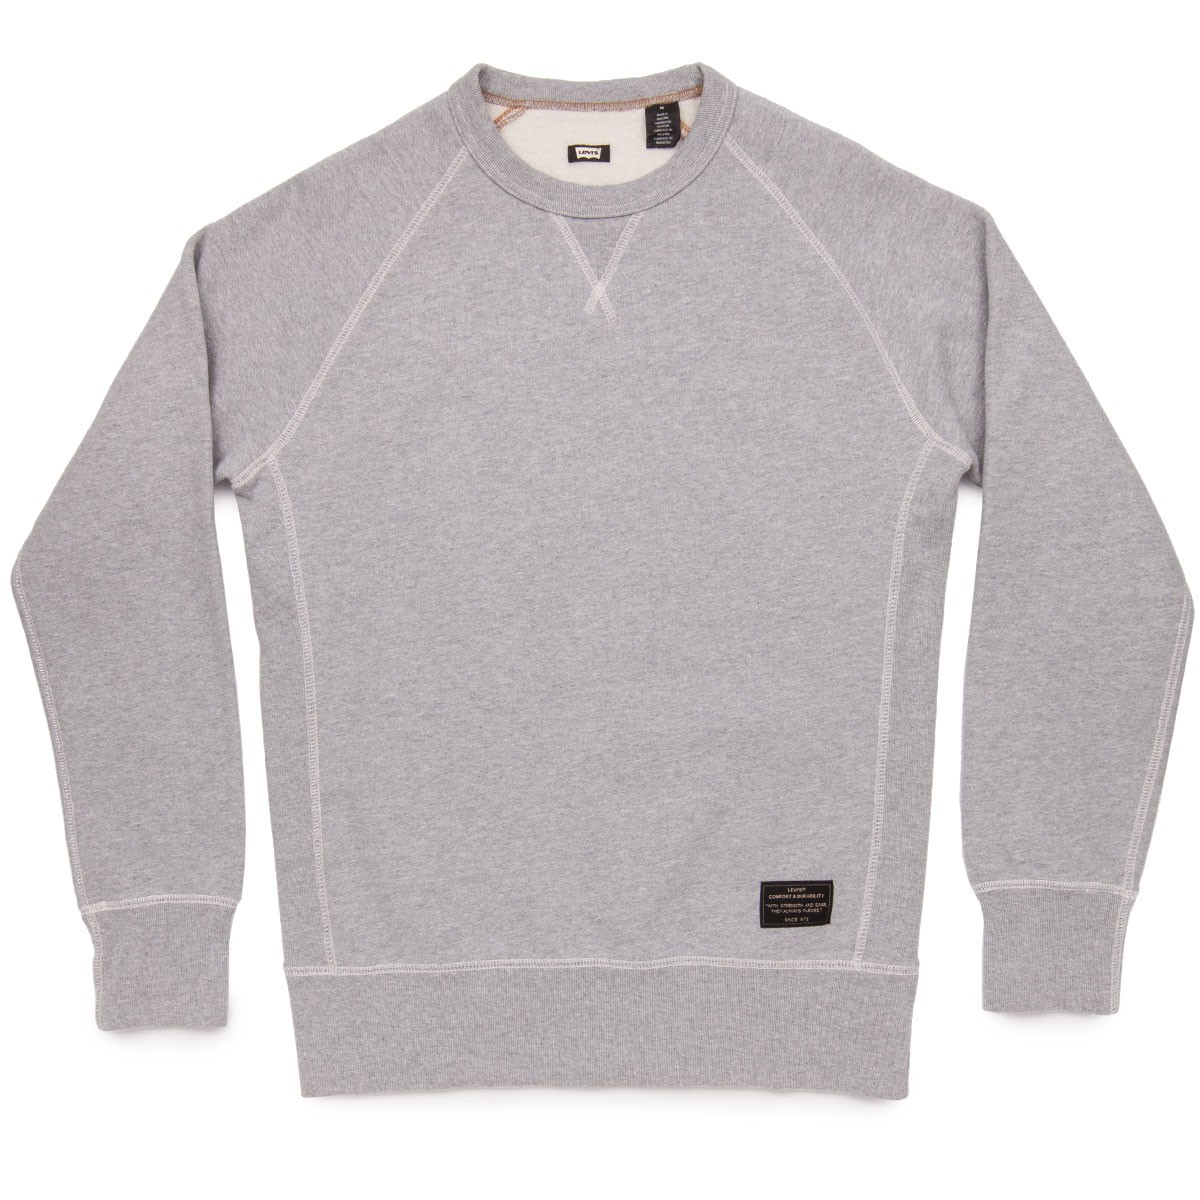 Levi's Skate Crewneck Fleece - Rollerskate Heather Grey